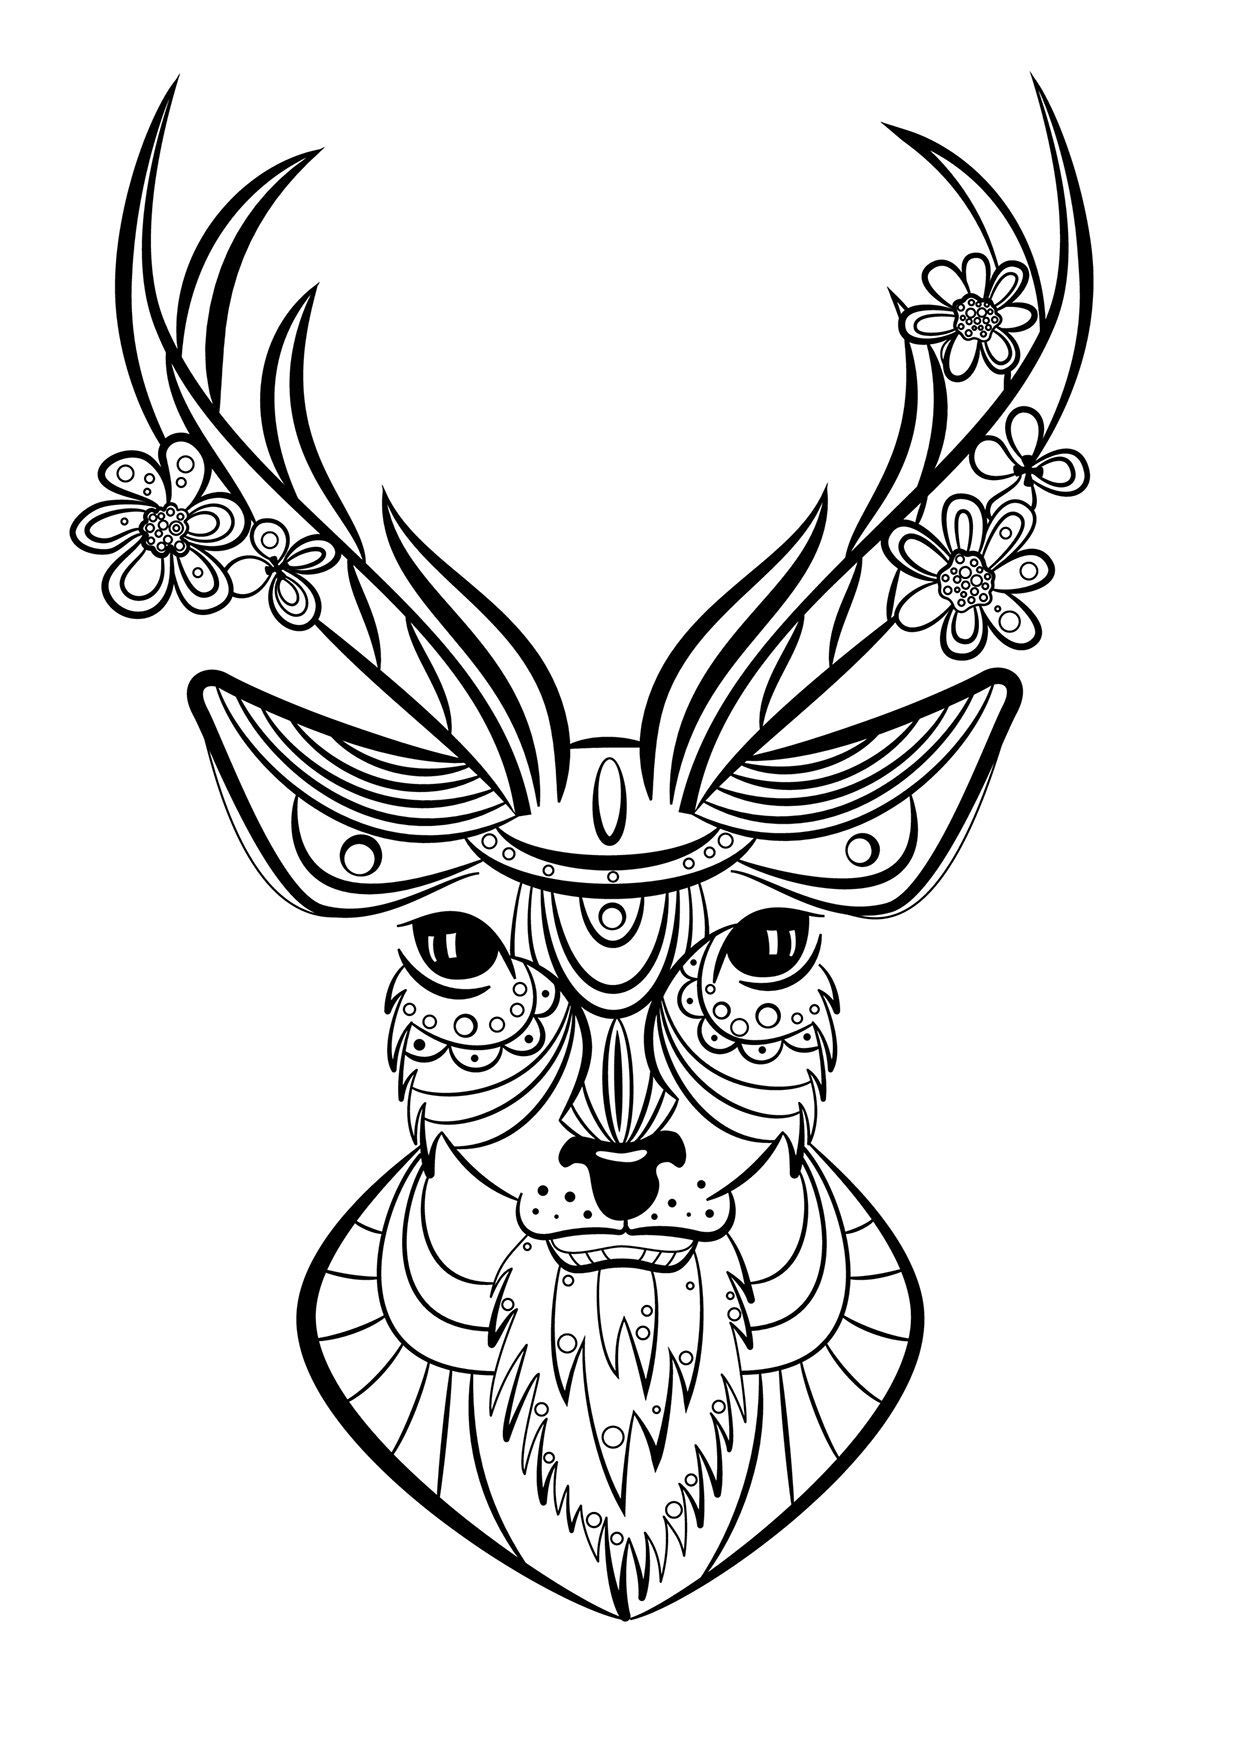 Epingle Par Anabel Sur Tatouage Mandala Animaux Coloriage